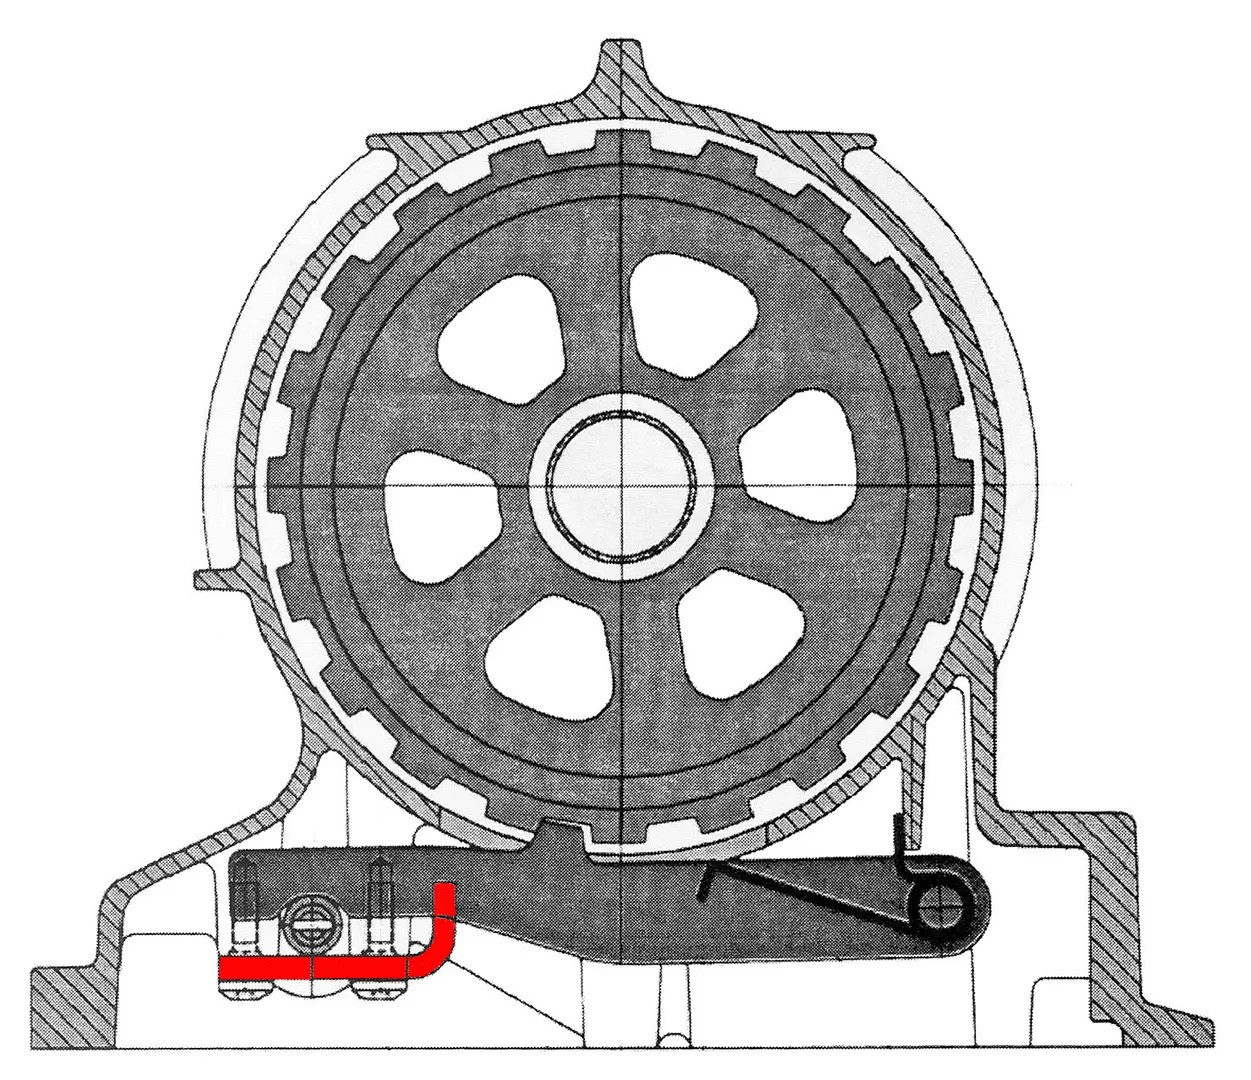 2004 RR transmission problem and questions